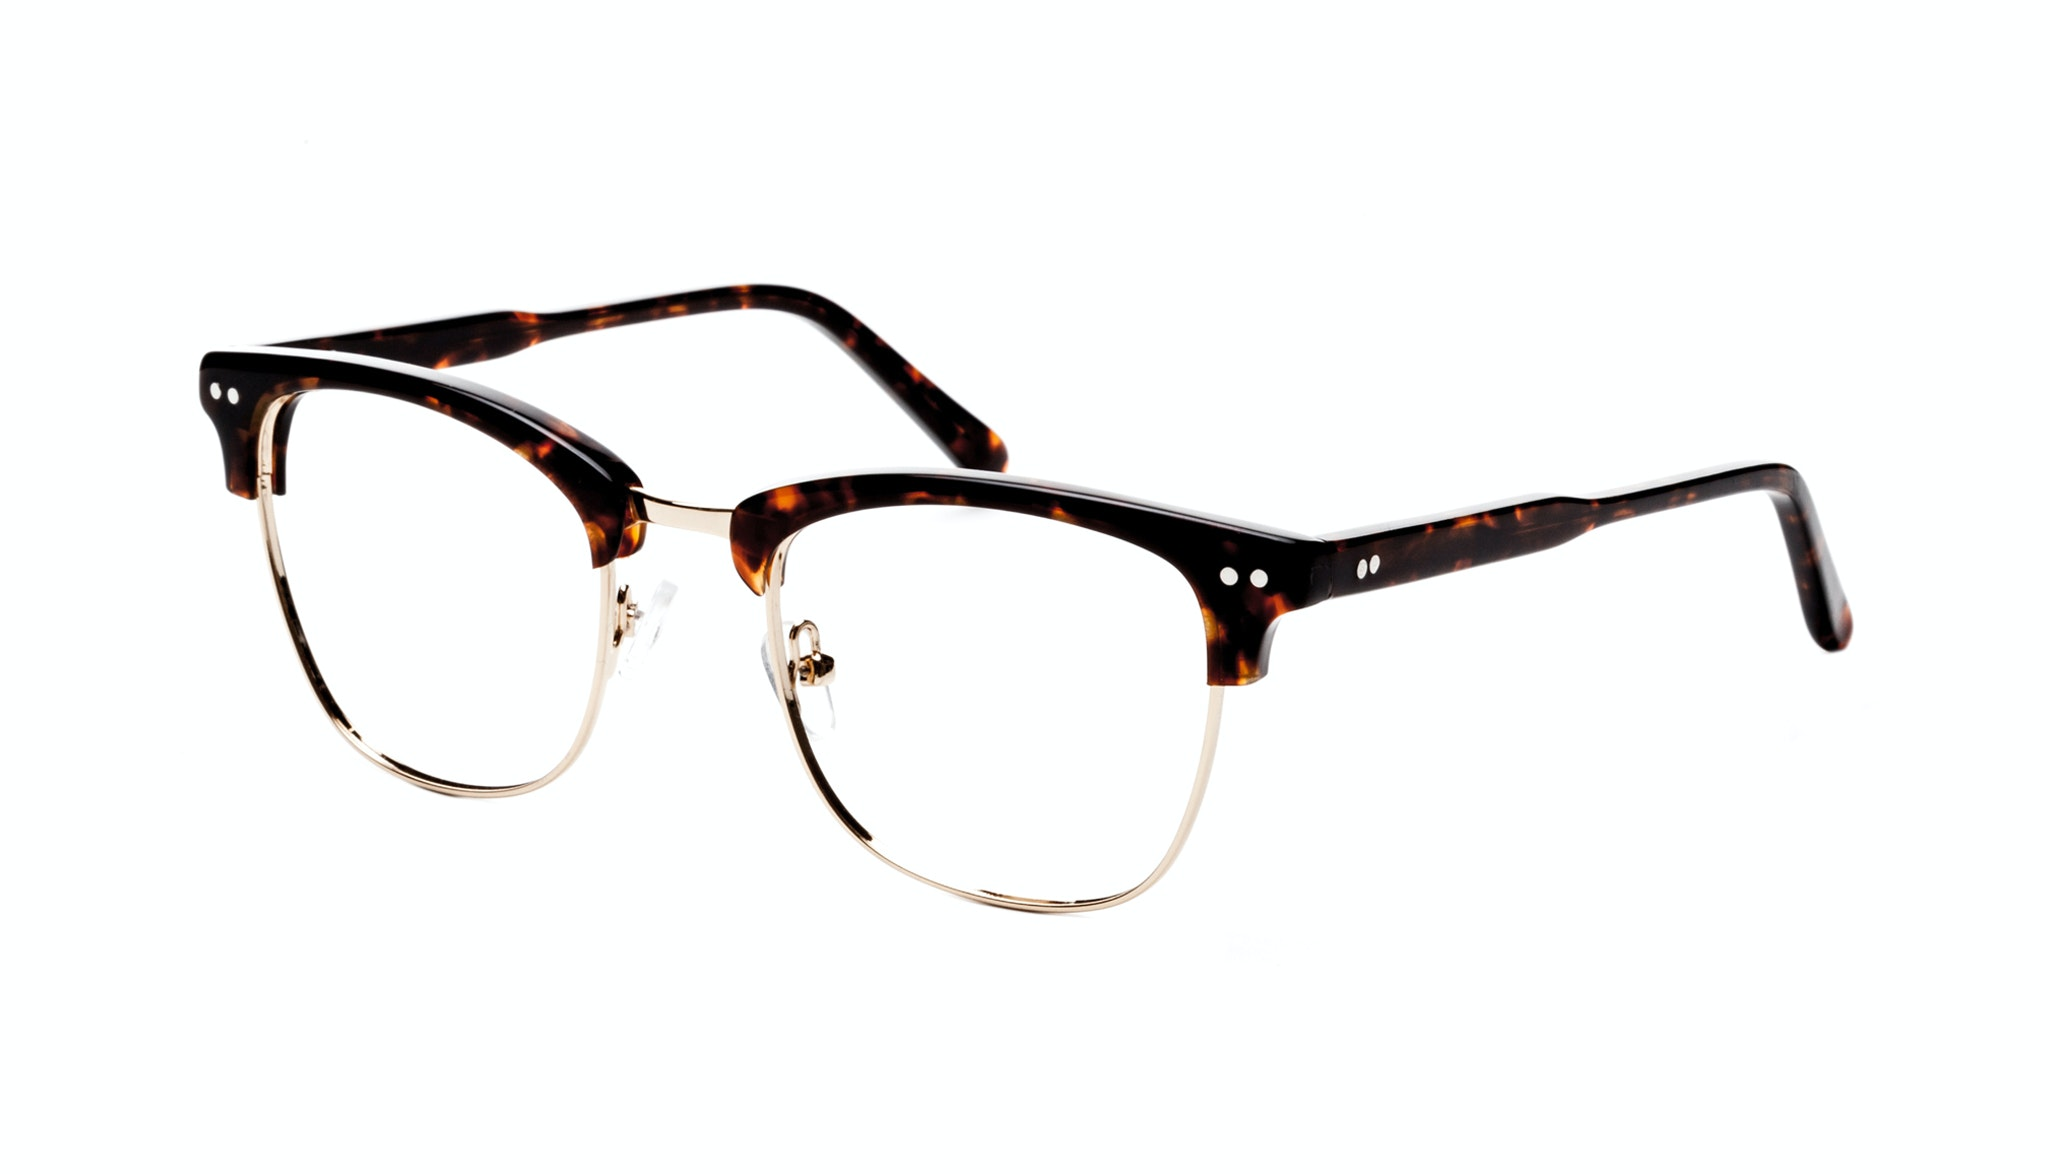 Affordable Fashion Glasses Square Eyeglasses Men Lift Gold Sepia Tilt